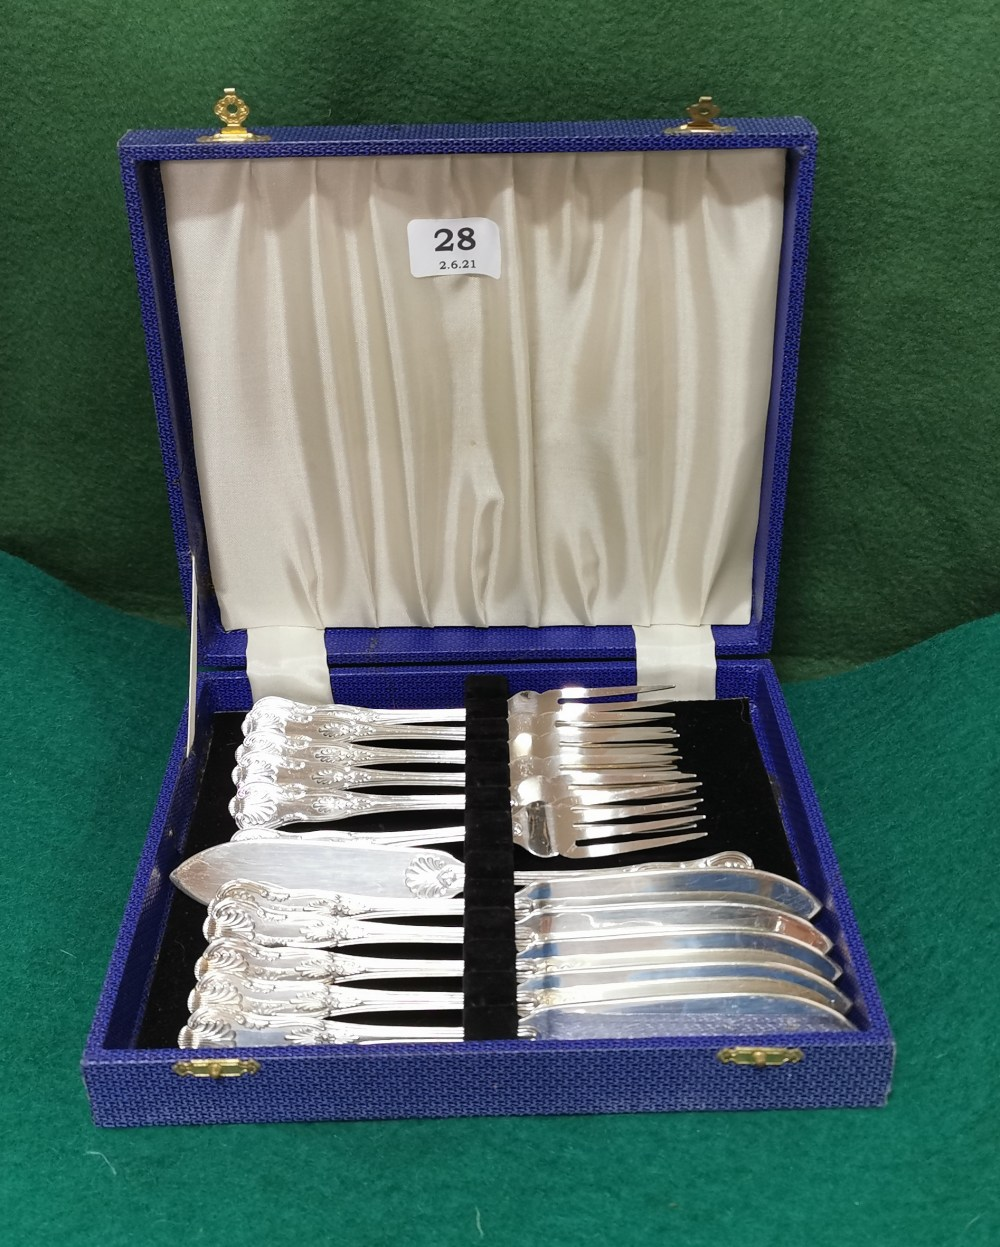 6 Place Setting of decorative EPNS Fish Knife and Forks, in a blue canteen (12)